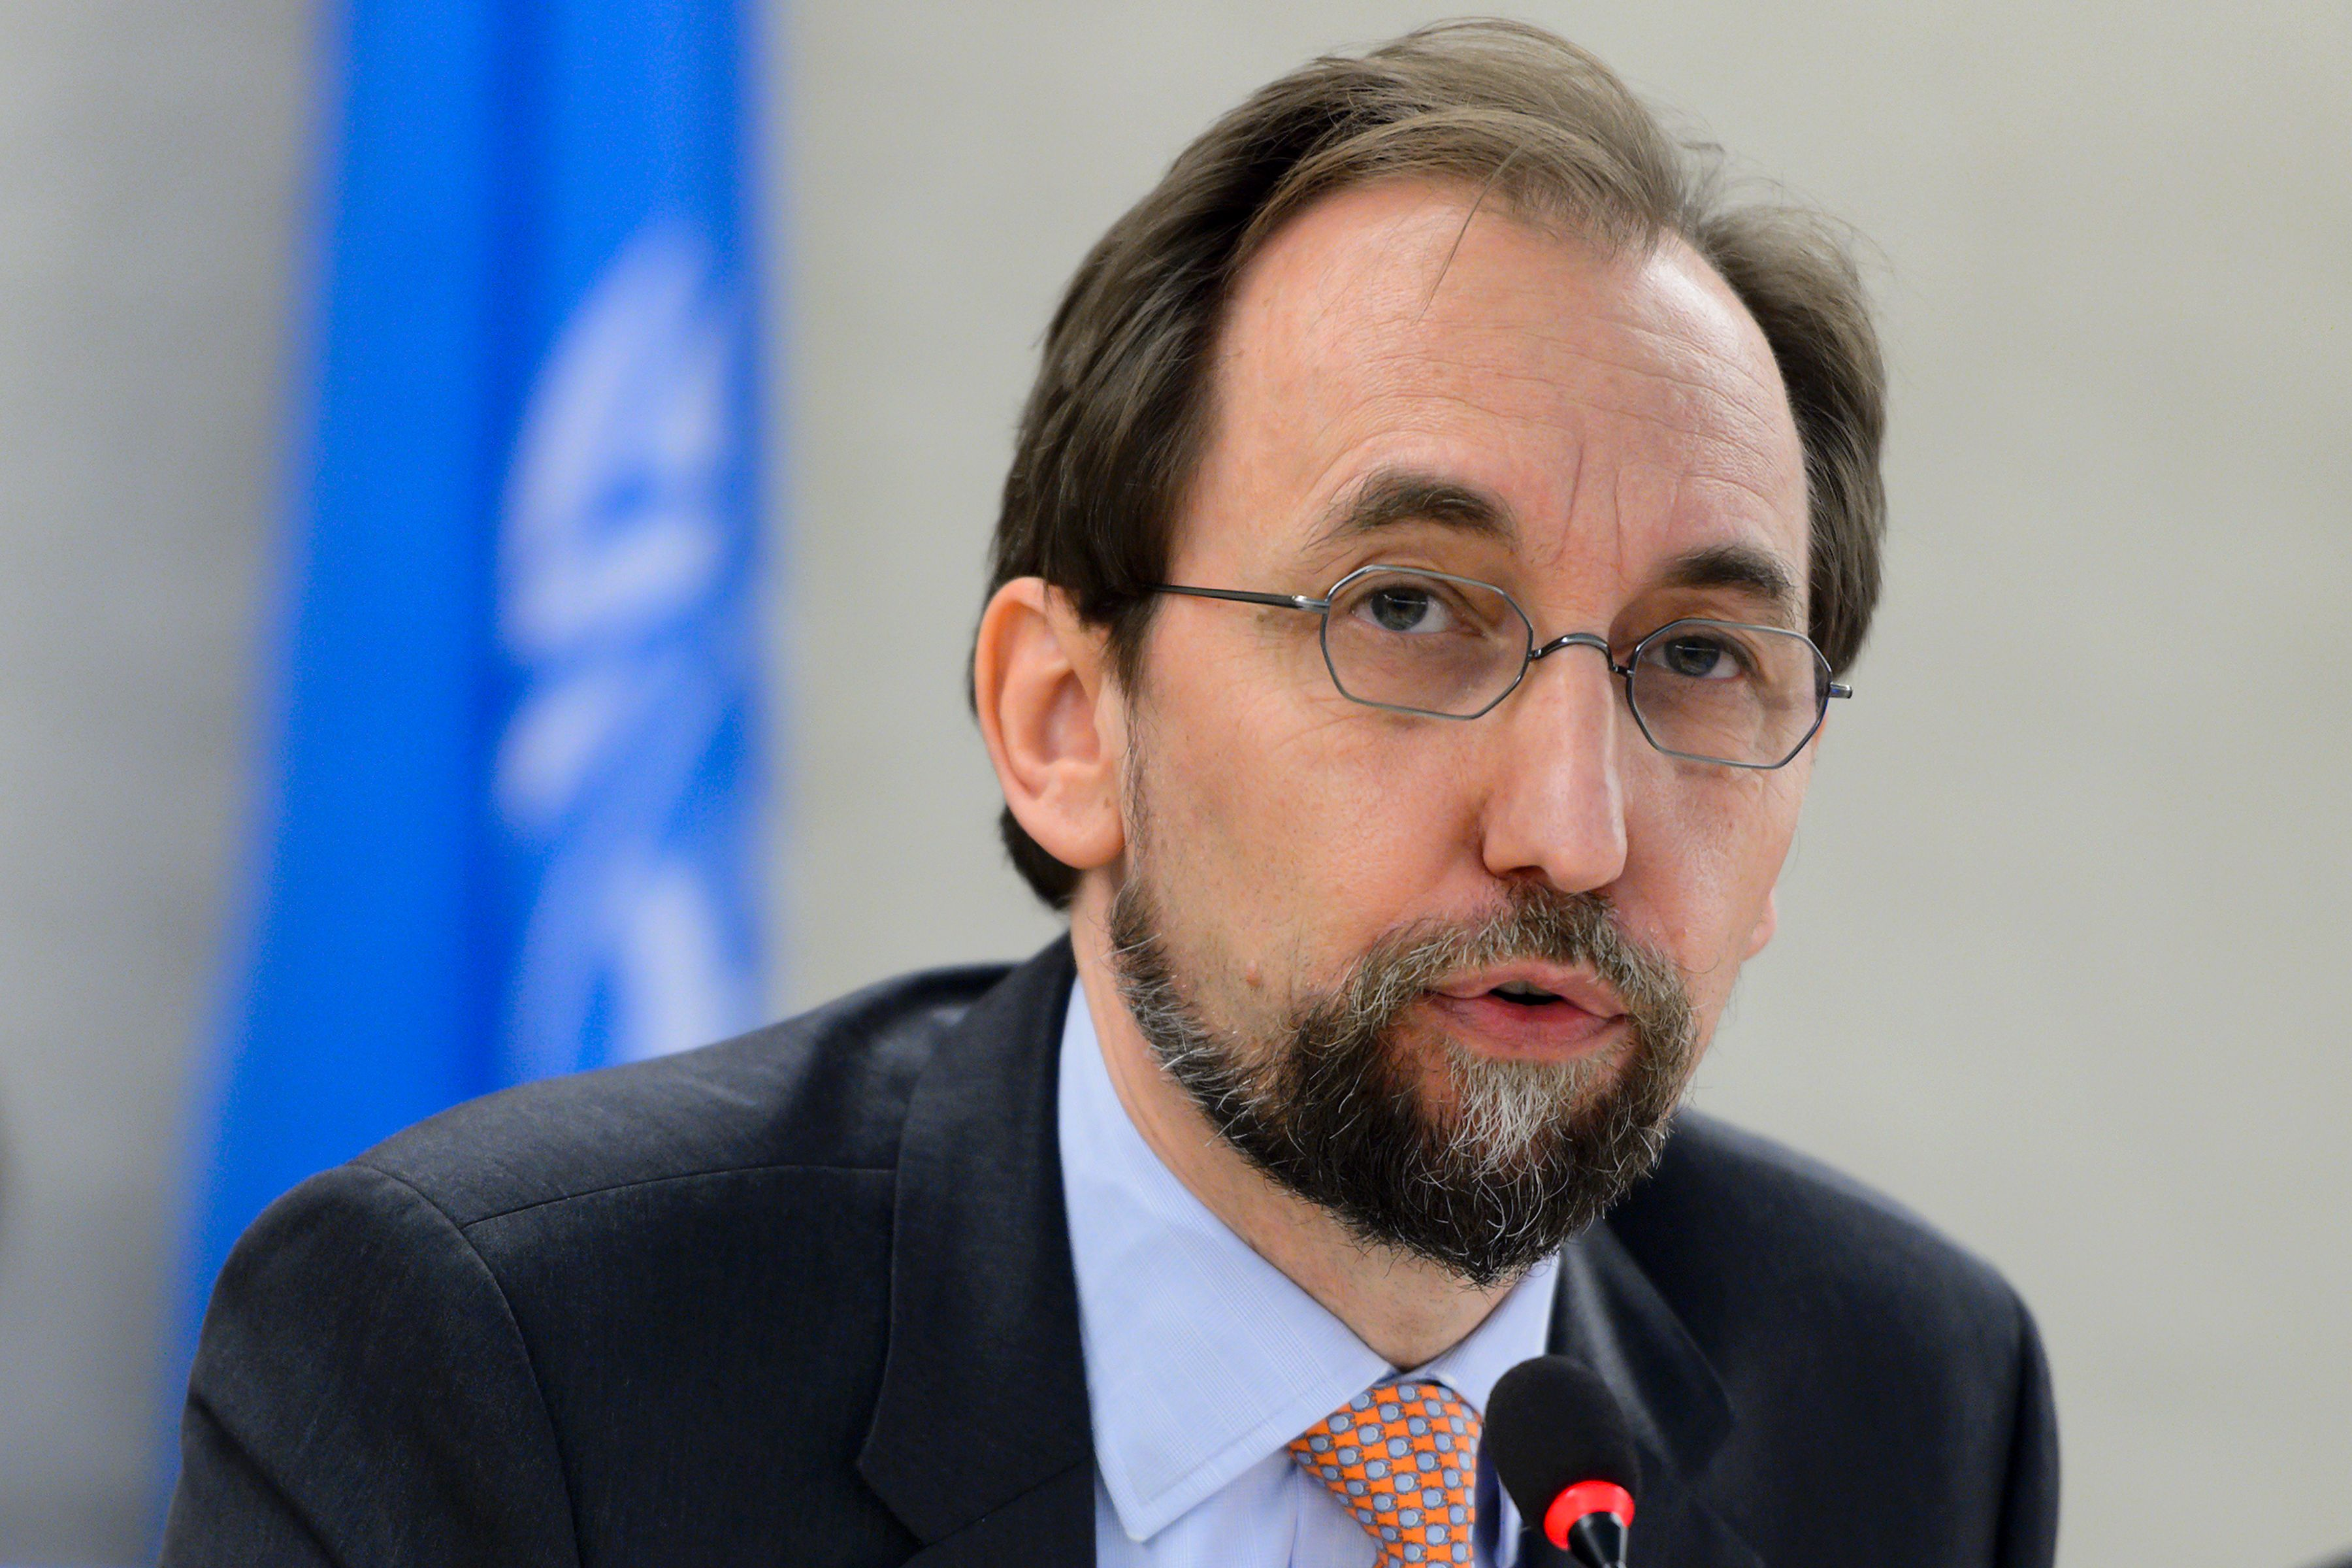 U.N. High Commissioner for Human Rights Zeid Ra'ad al-Hussein delivers a speech at the opening of a new council's session on June 13, 2016, in Geneva